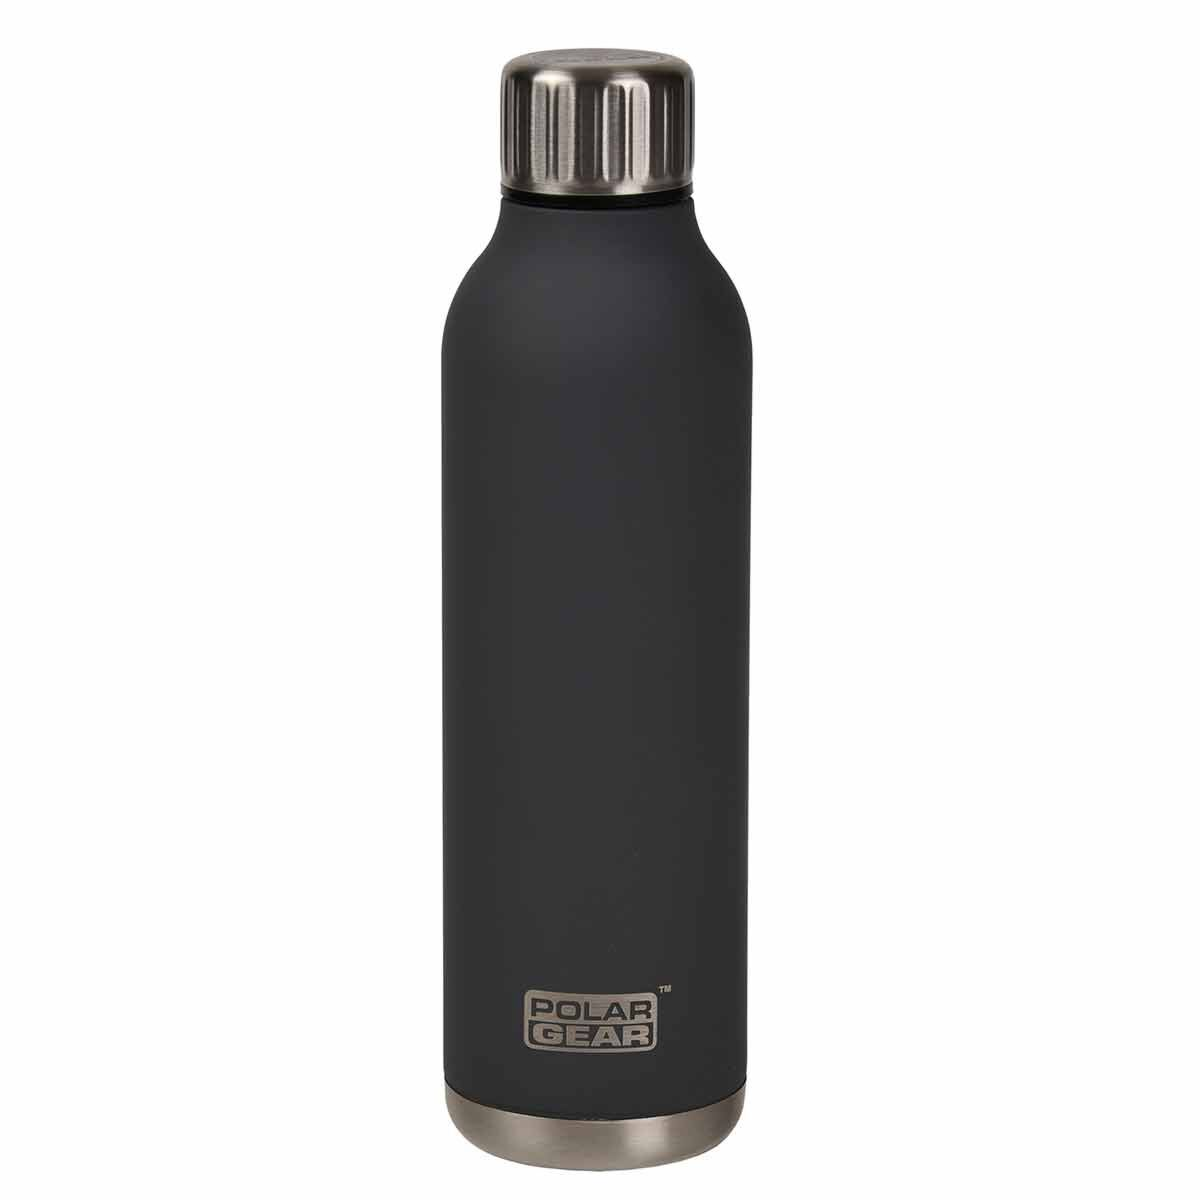 Polar Gear Orion Stainless Steel 500ml Insulated Bottle